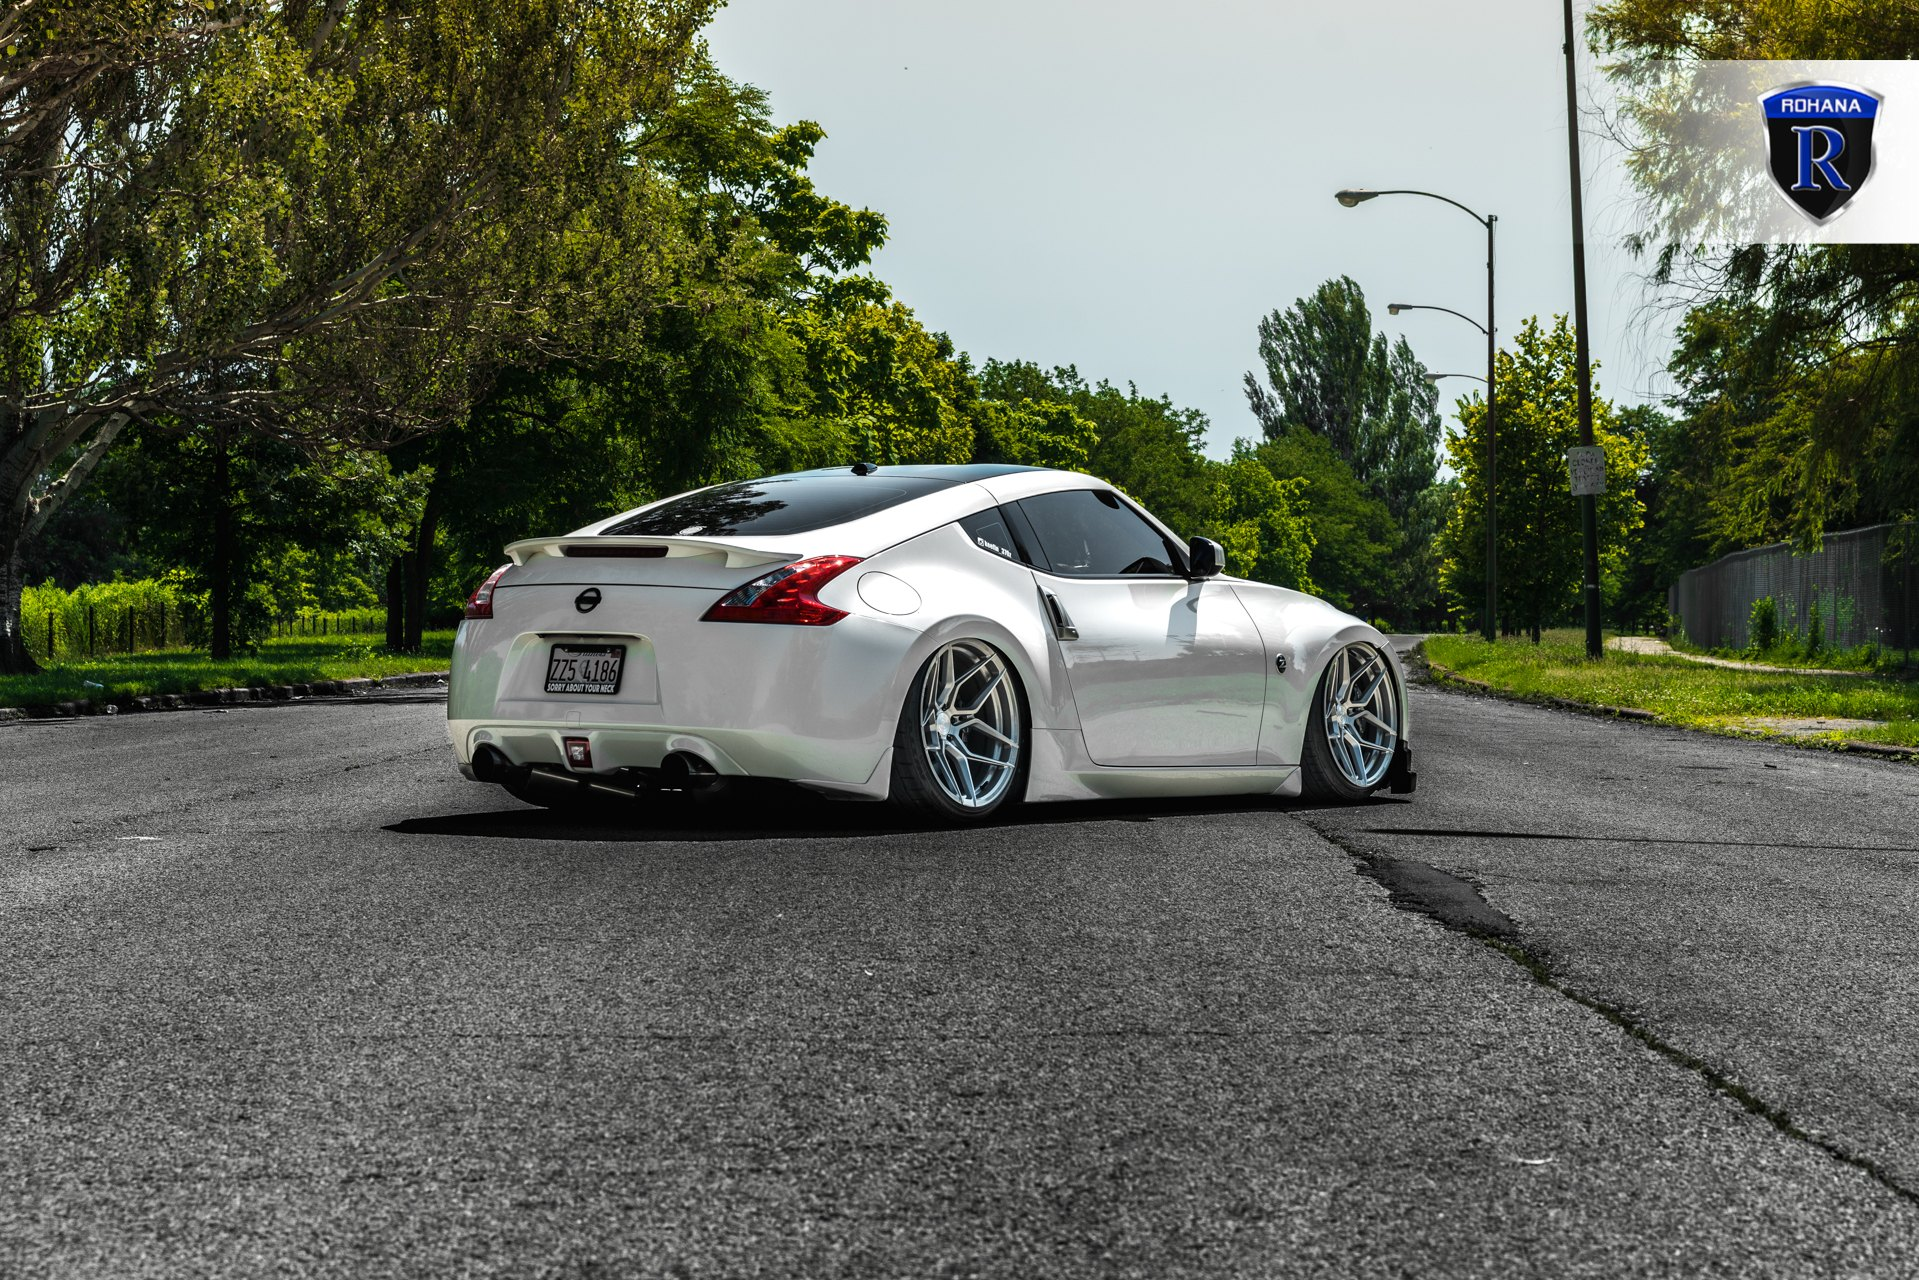 Aftermarket Rear Spoiler on White Nissan 370Z - Photo by Rohana Wheels